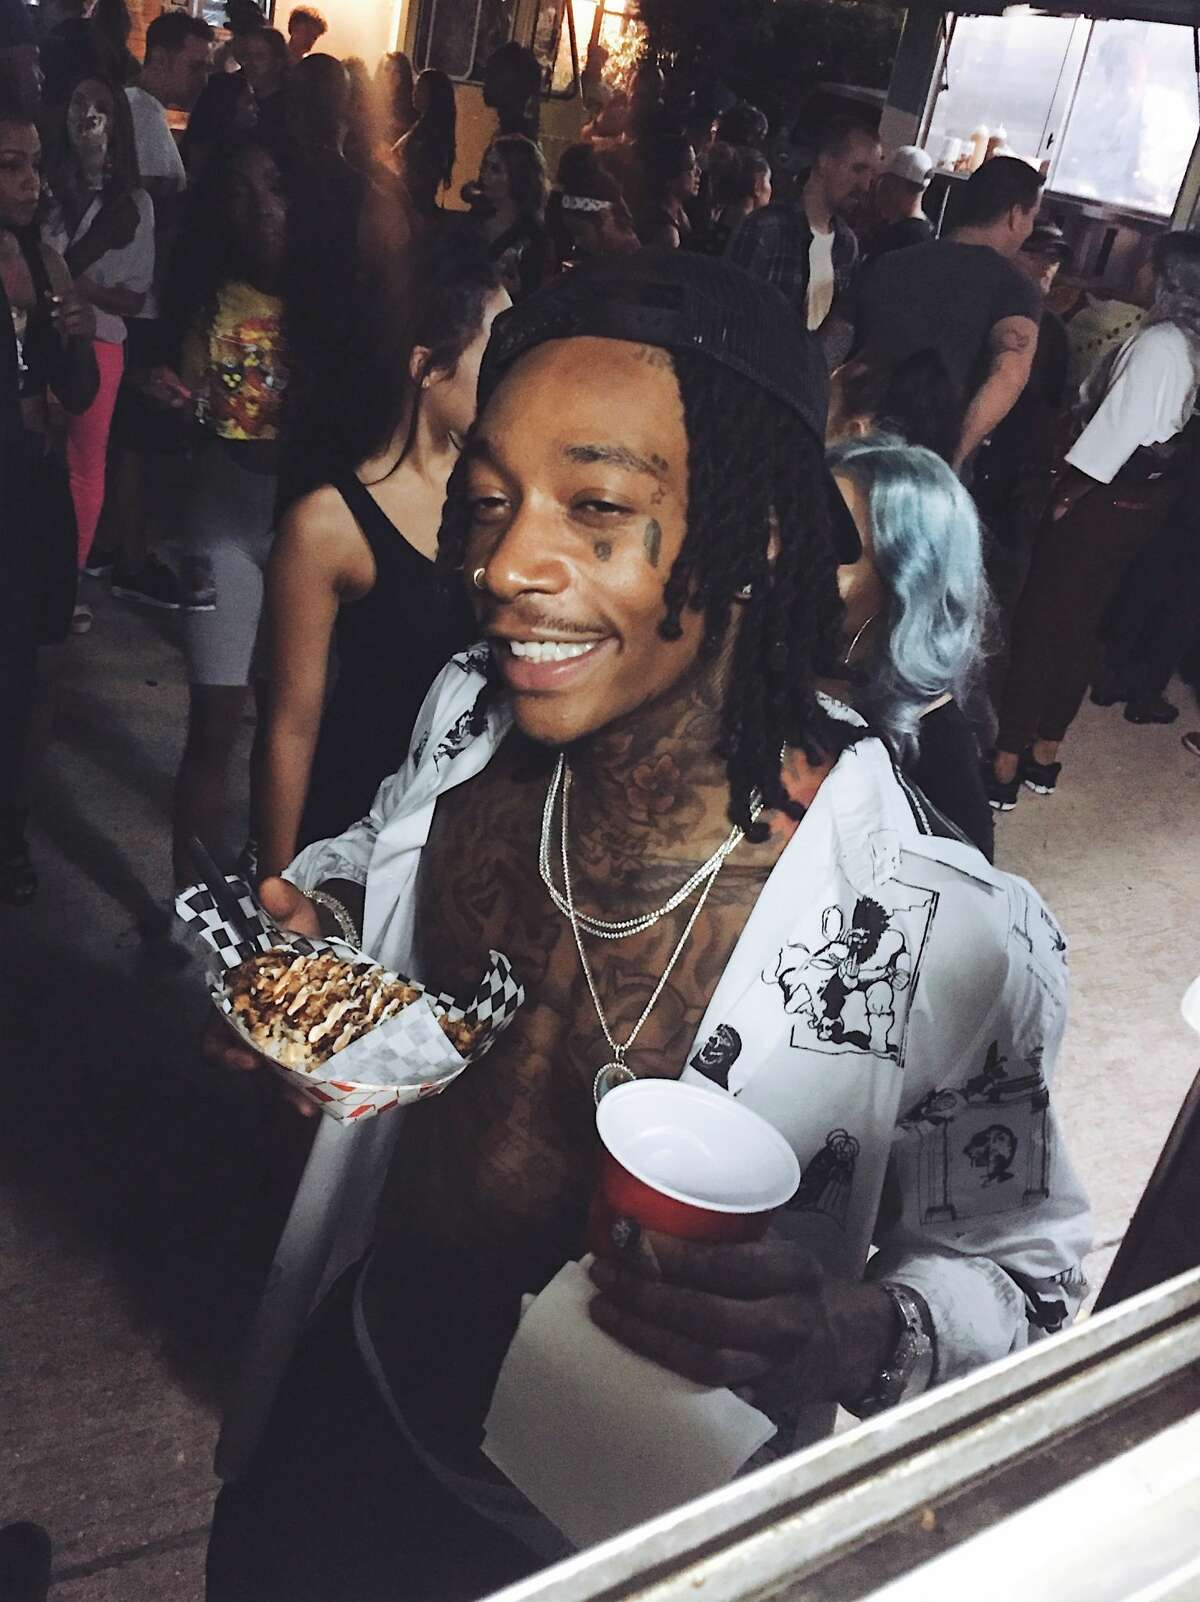 Popular food truck Sticky's Chicken, which counts Wiz Khalifa, Jas Prince, Bun B and Houston Texans star DeAndre Hopkins among its fans, is getting a brick-and-mortar location.